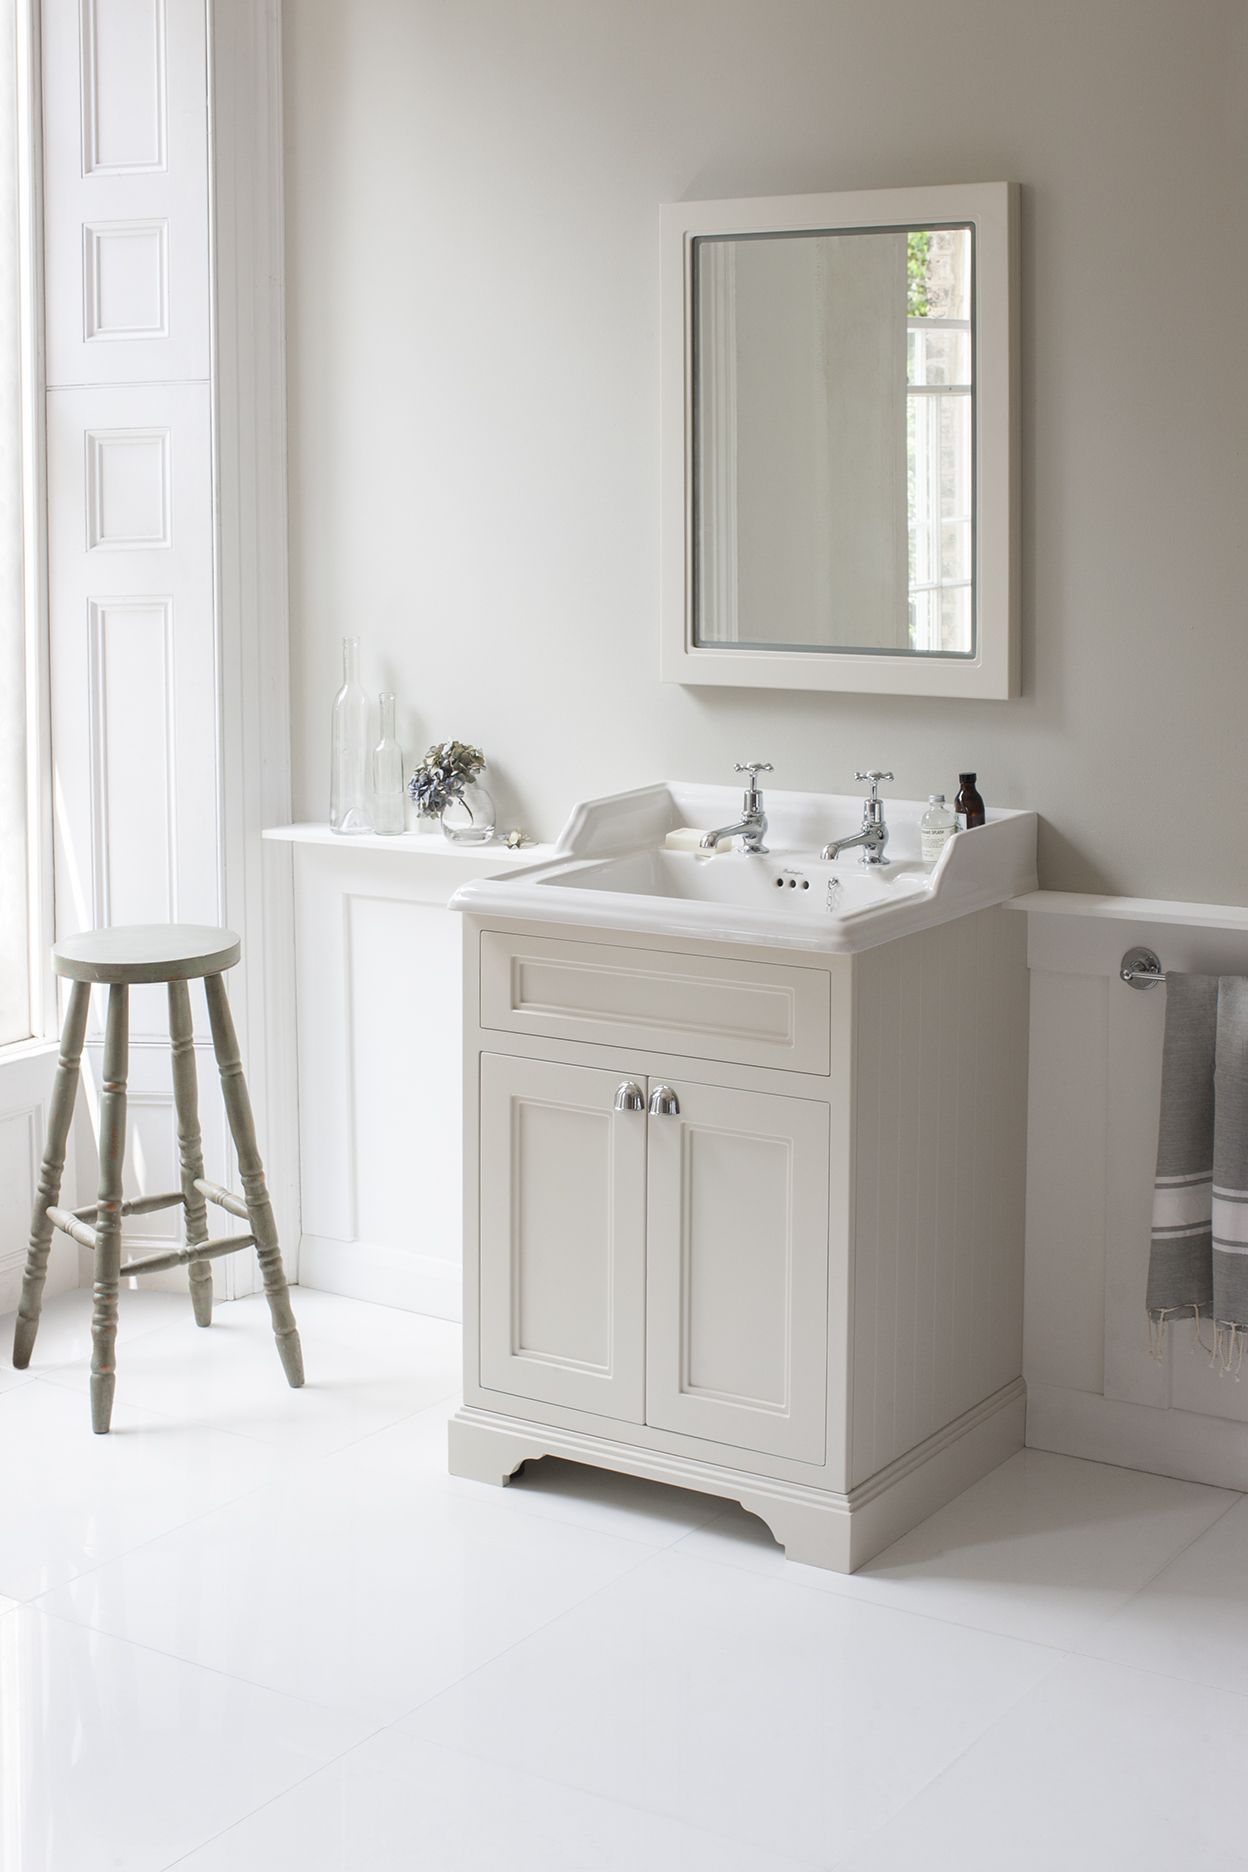 Classic Style And Sophisticated British Elegant With The Sand Freestanding 65 Vanity Unit With Doors F Traditional Bathroom Victorian Bathroom Bathroom Styling